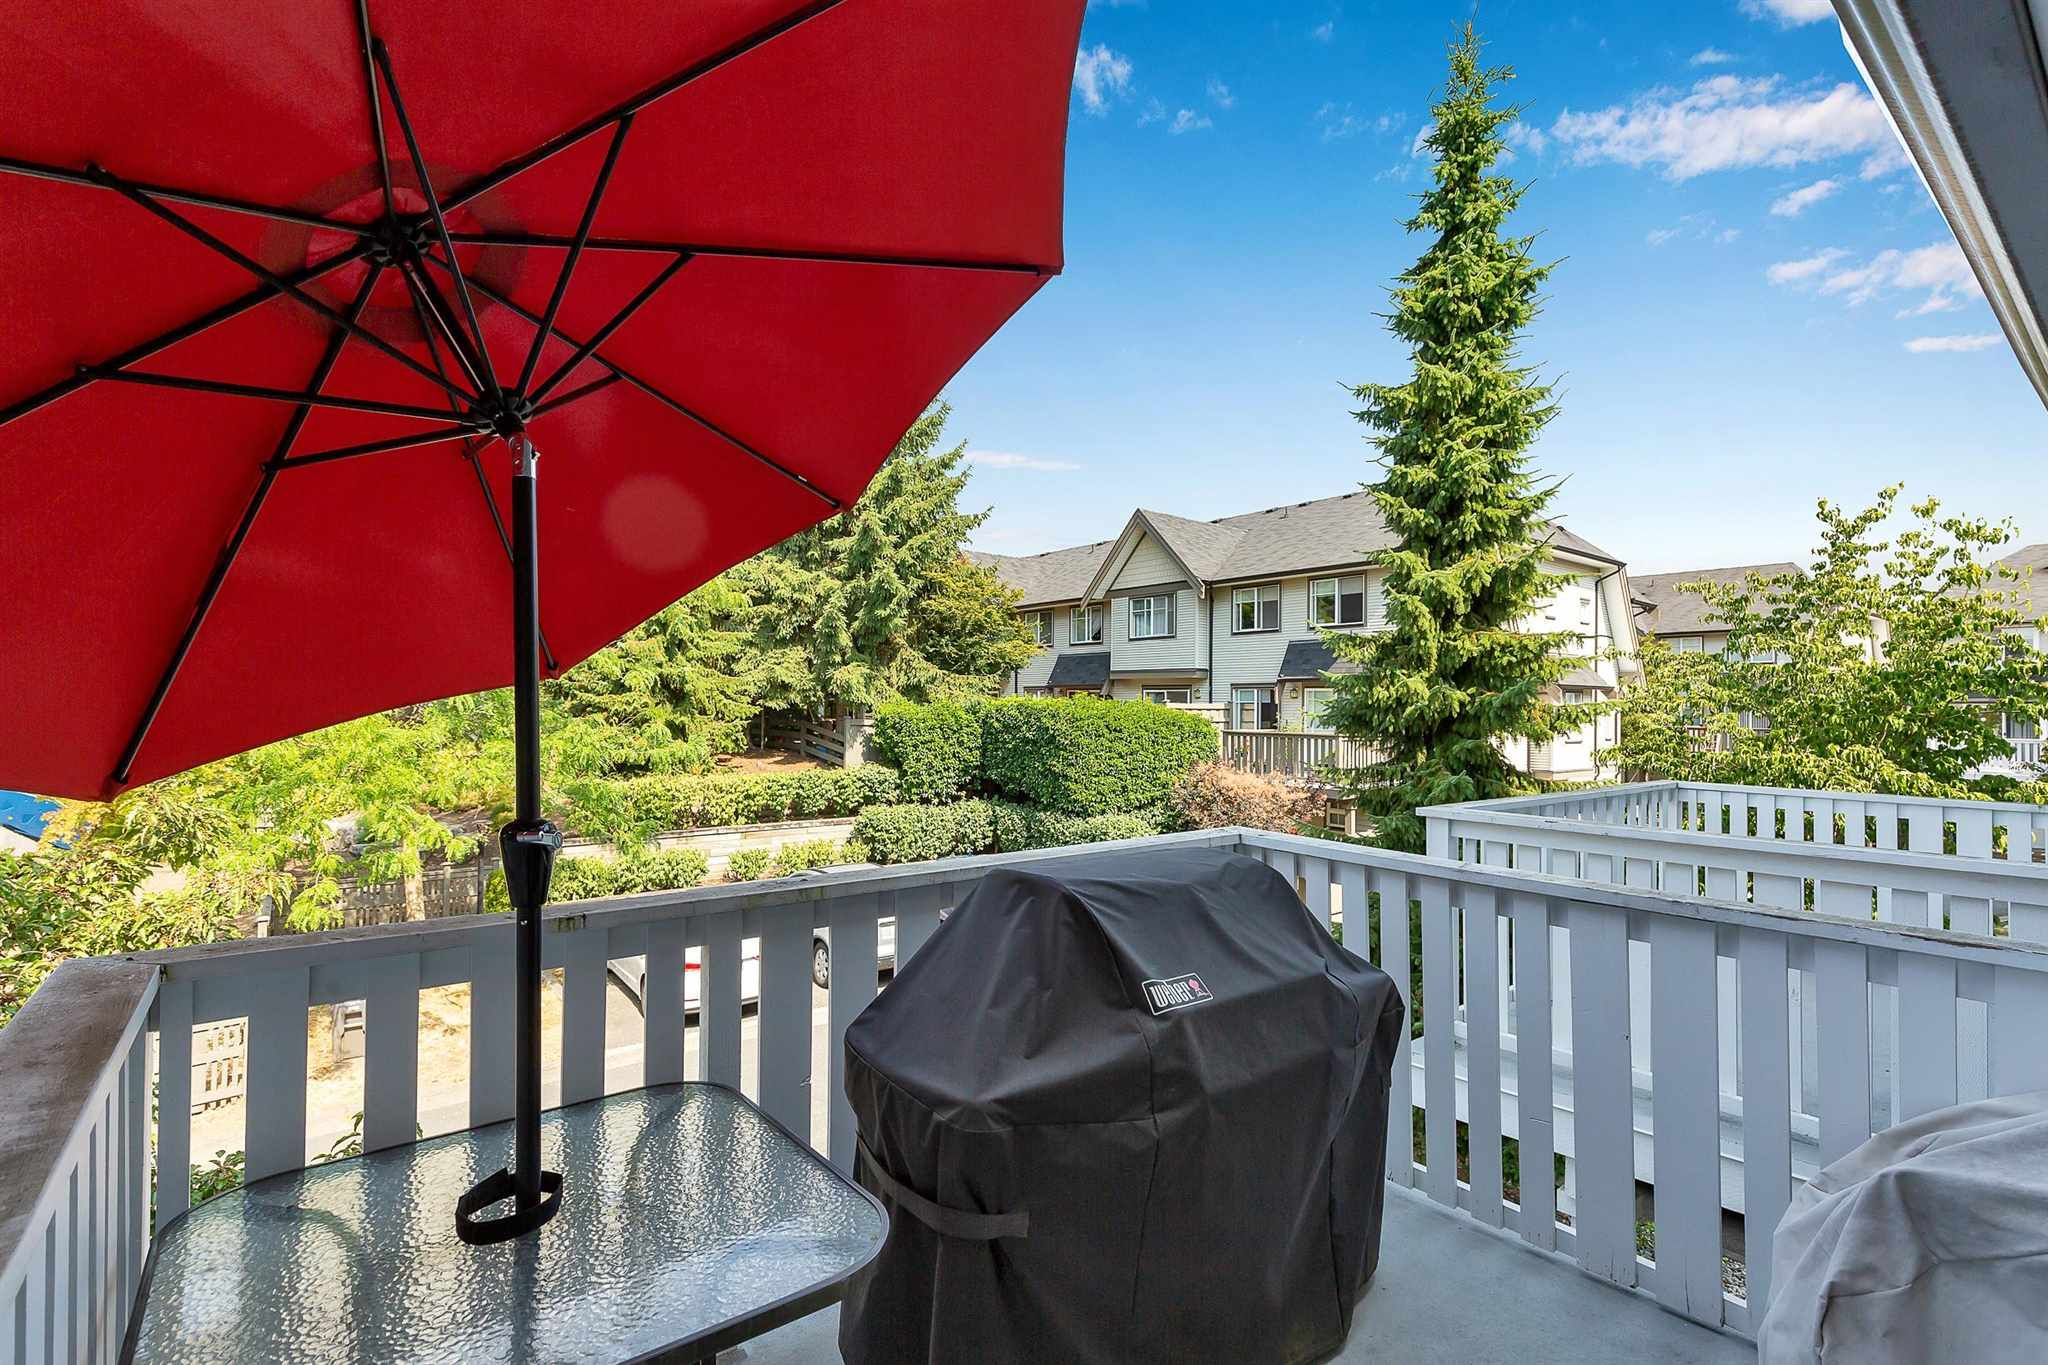 """Photo 27: Photos: 9 15871 85 Avenue in Surrey: Fleetwood Tynehead Townhouse for sale in """"Huckleberry"""" : MLS®# R2606668"""